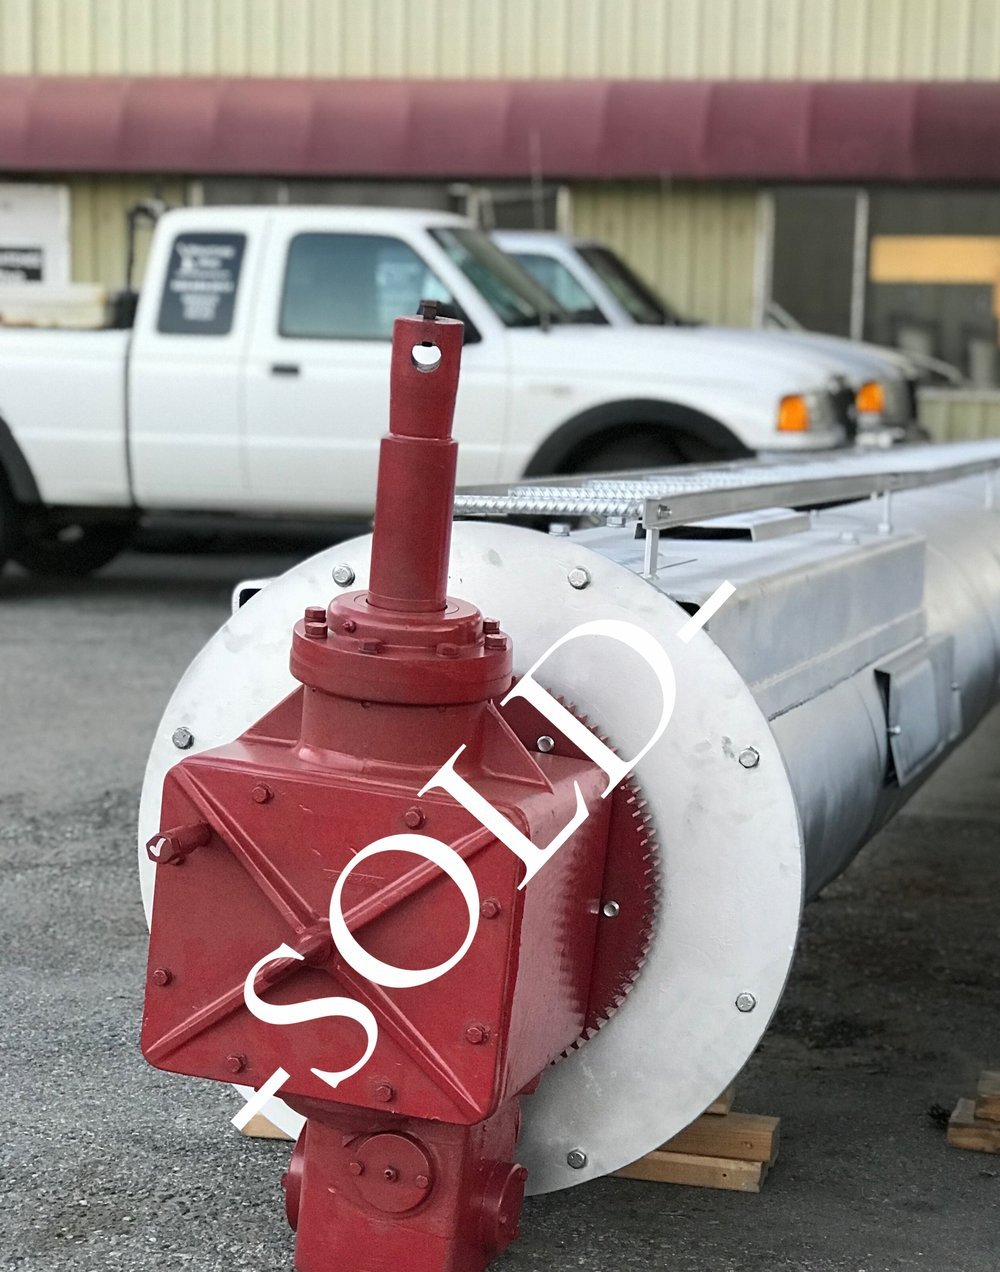 Orchard Rite 100HP Electric $SOLD   - Refurbished gearbox  and freshly painted tower  - Refurbished 100HP motor  -Fiberglass Propeller  See it at 1512 Walla Walla Avenue in Wenatchee   Call for details